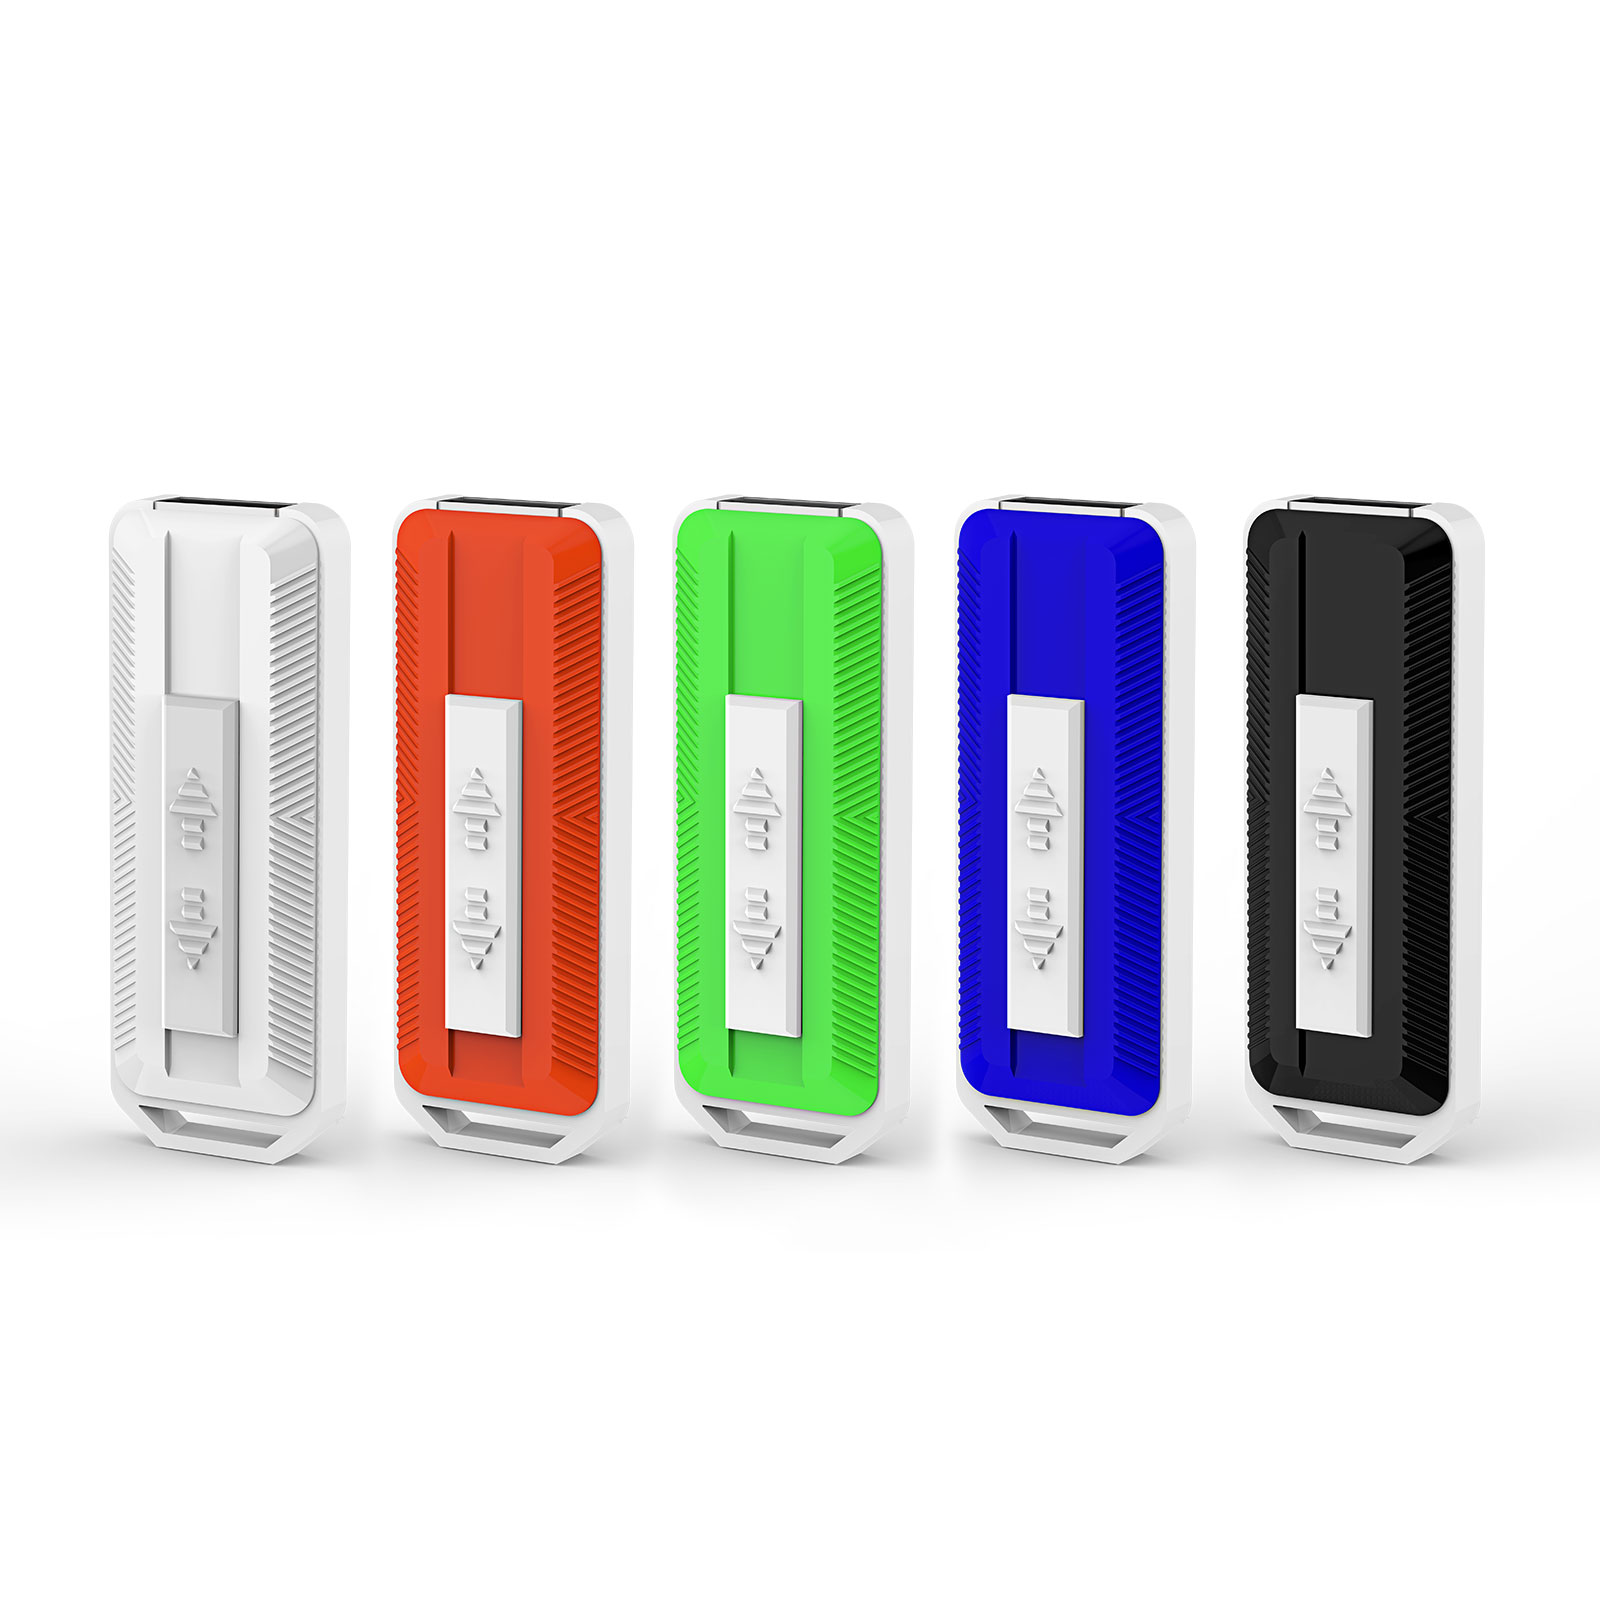 KOOTION 5PCS 8GB USB 2.0 Flash Drives Thumb Drives Memory Stick Side Sliding Retractable USB Drives,  Black, Blue, Red, Green, White